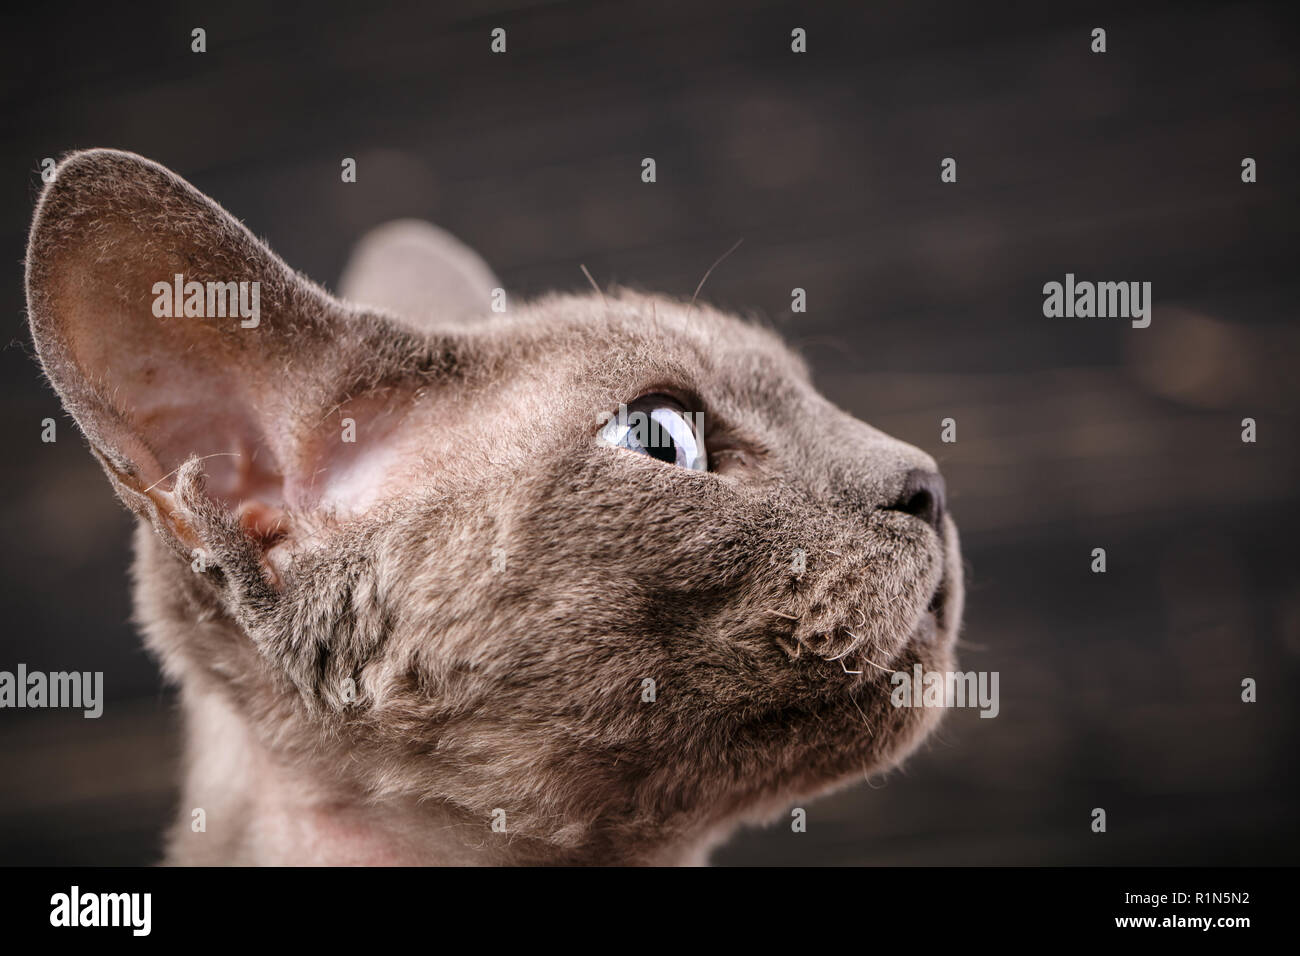 Devon-rex cat close-up portrait. Exhibition of cats concept. Stock Photo